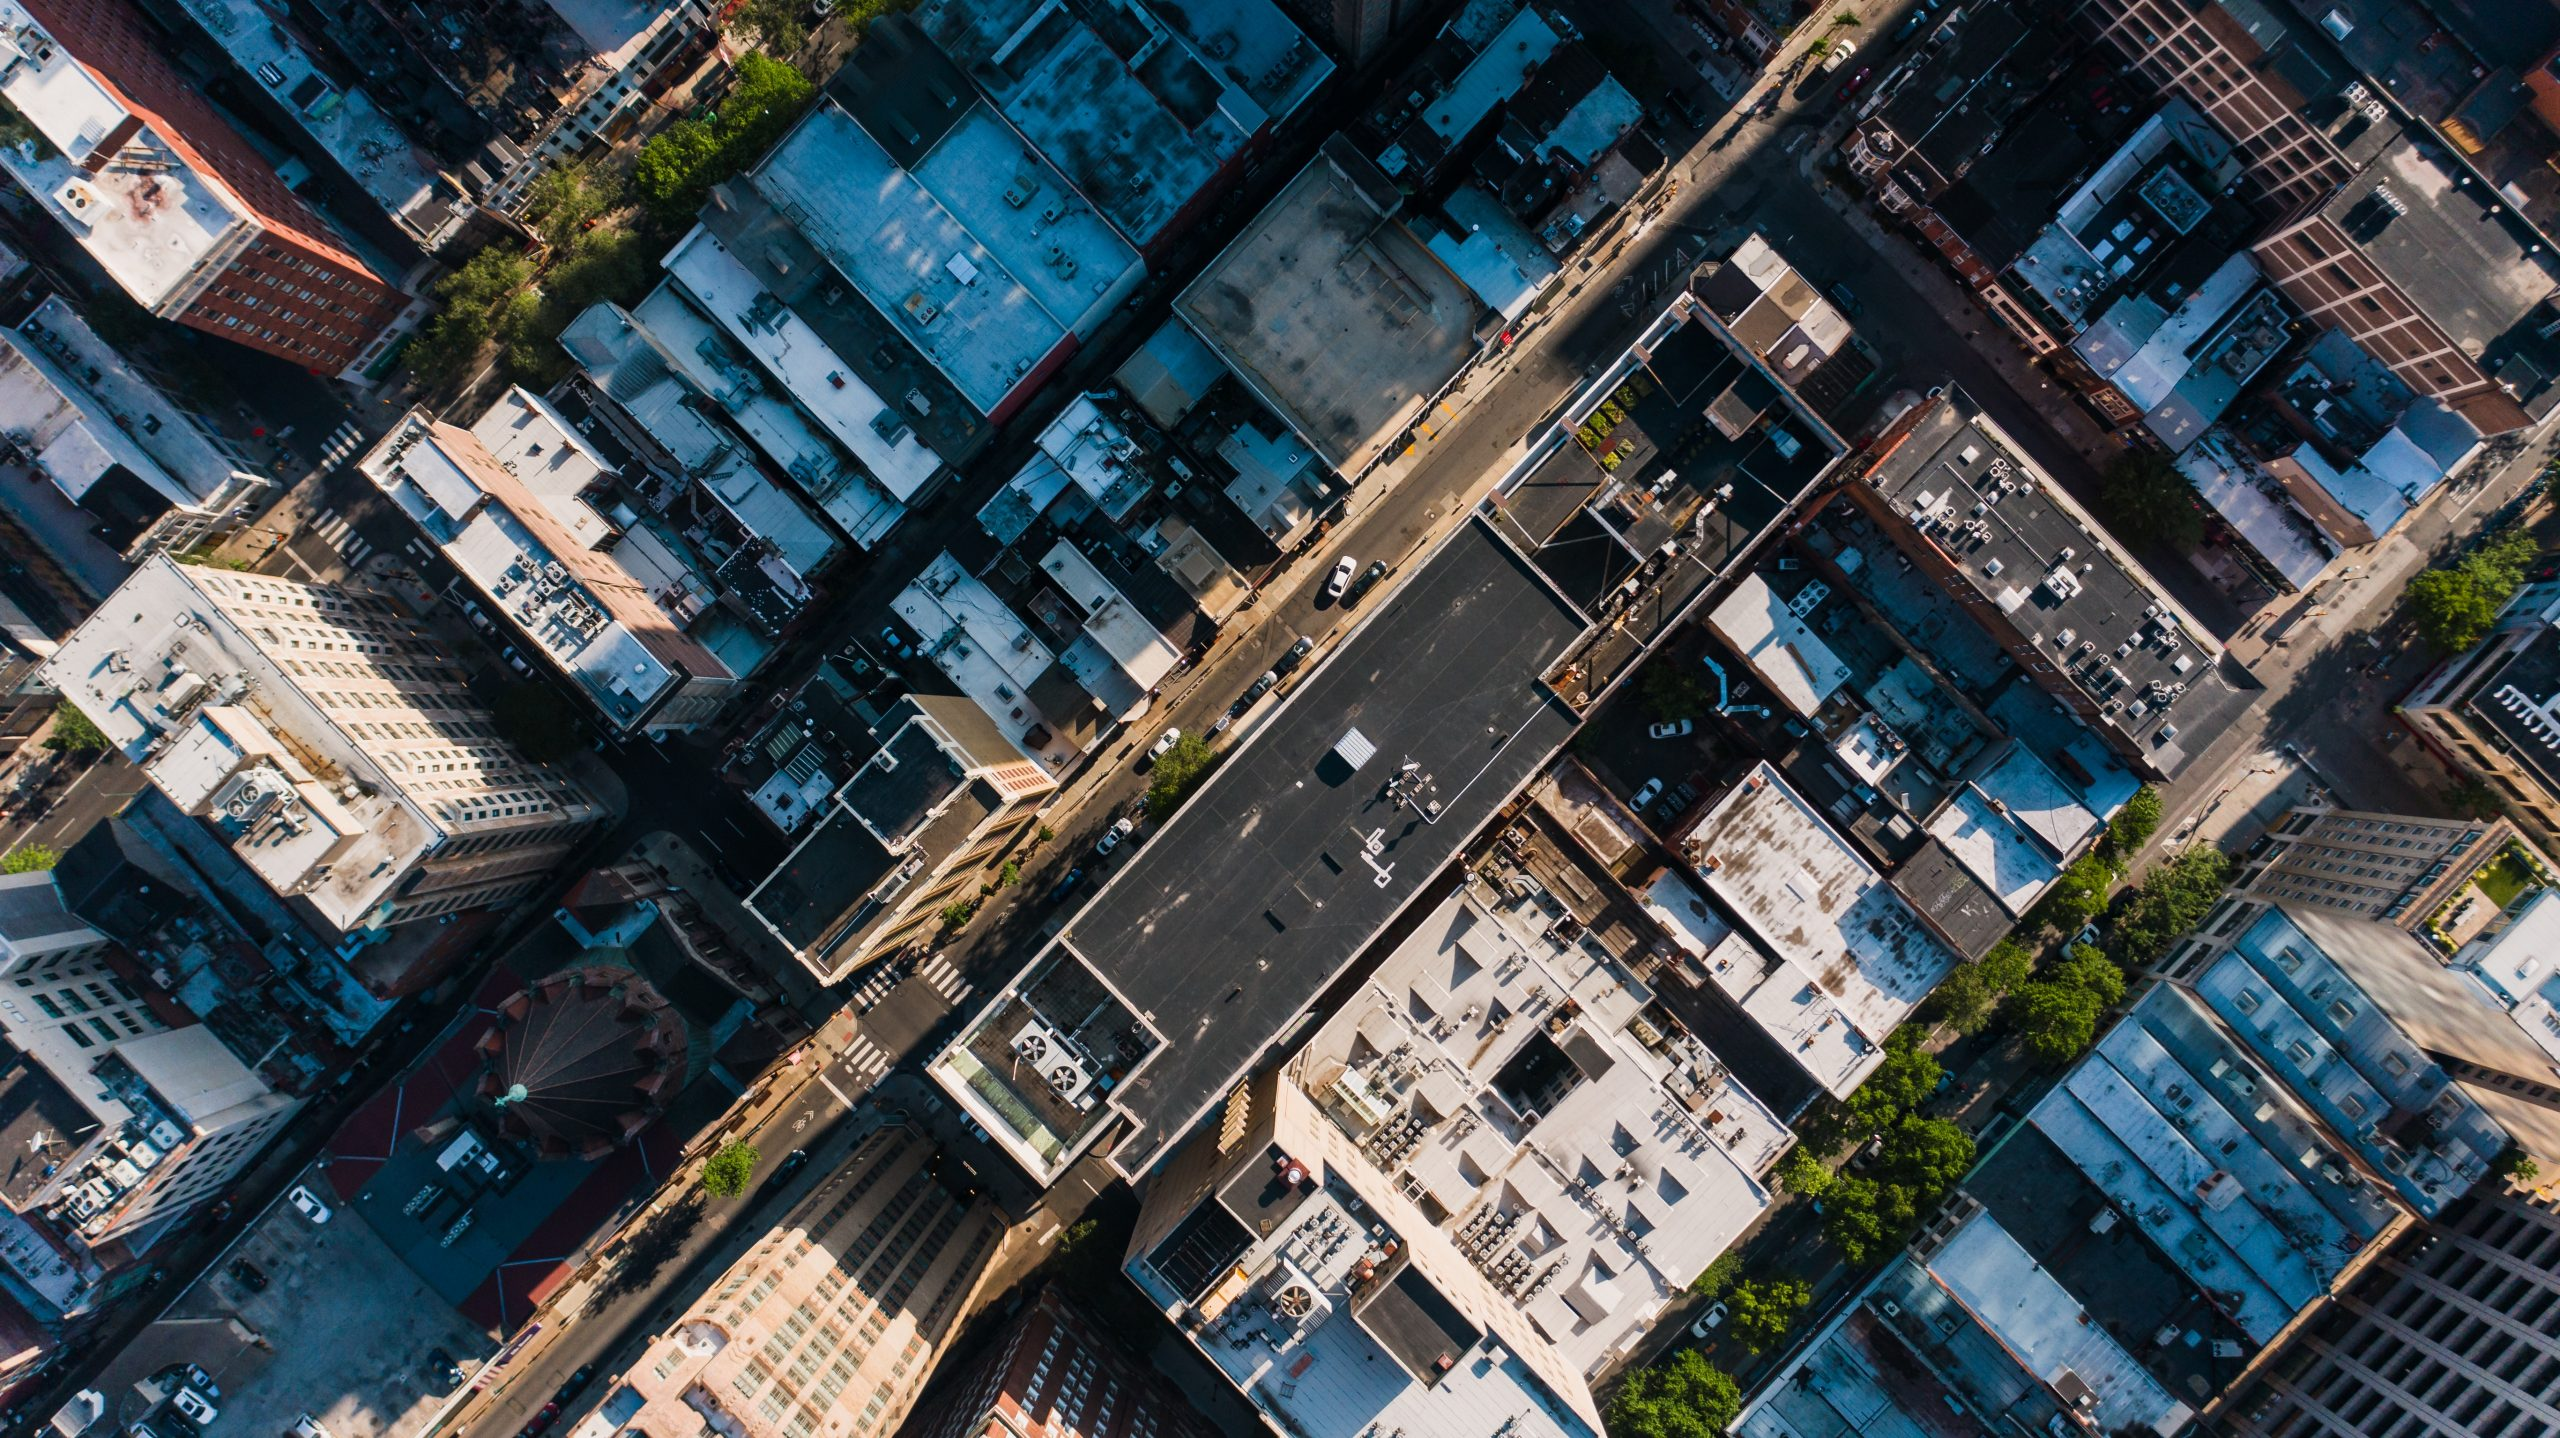 An aerial image of a city street